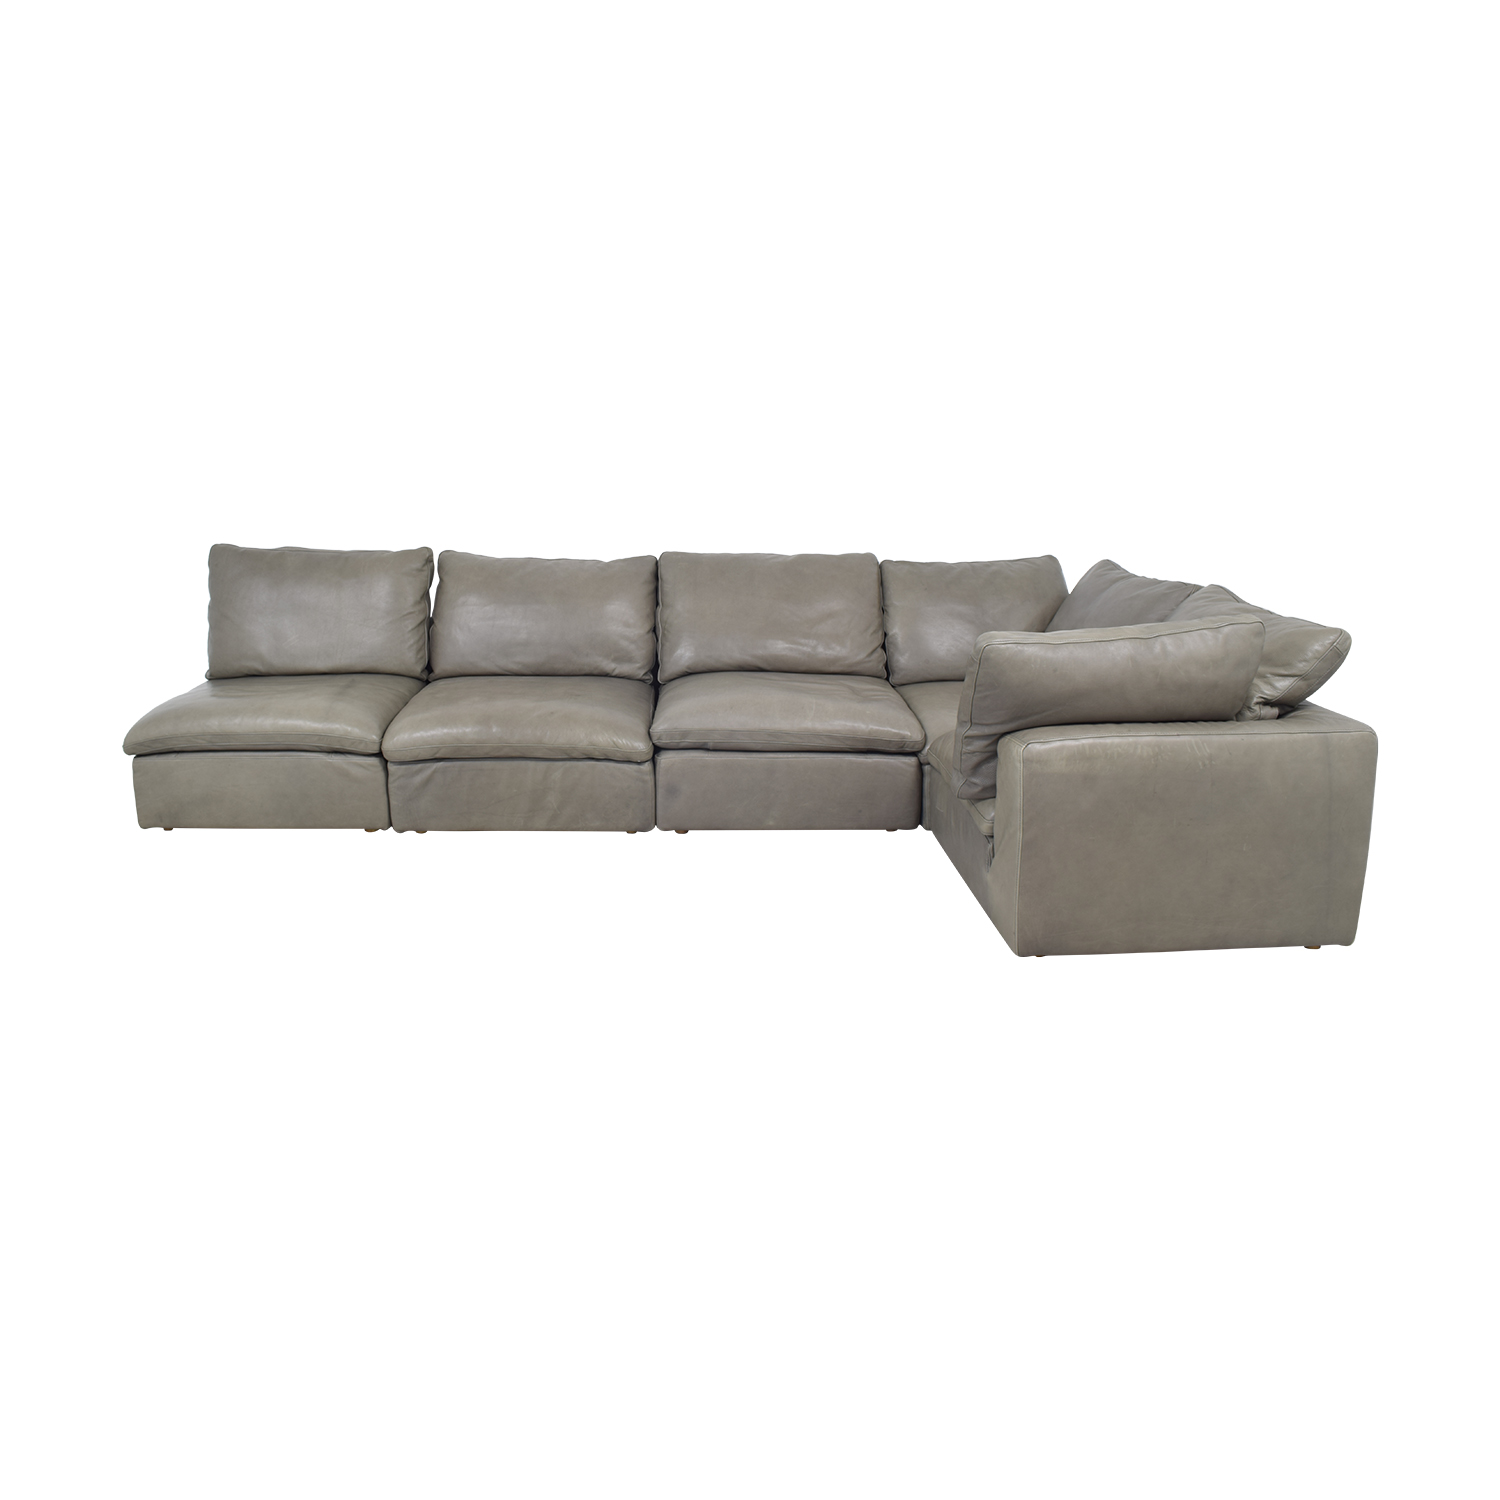 buy Restoration Hardware Cloud Modular Sectional Sofa Restoration Hardware Sectionals